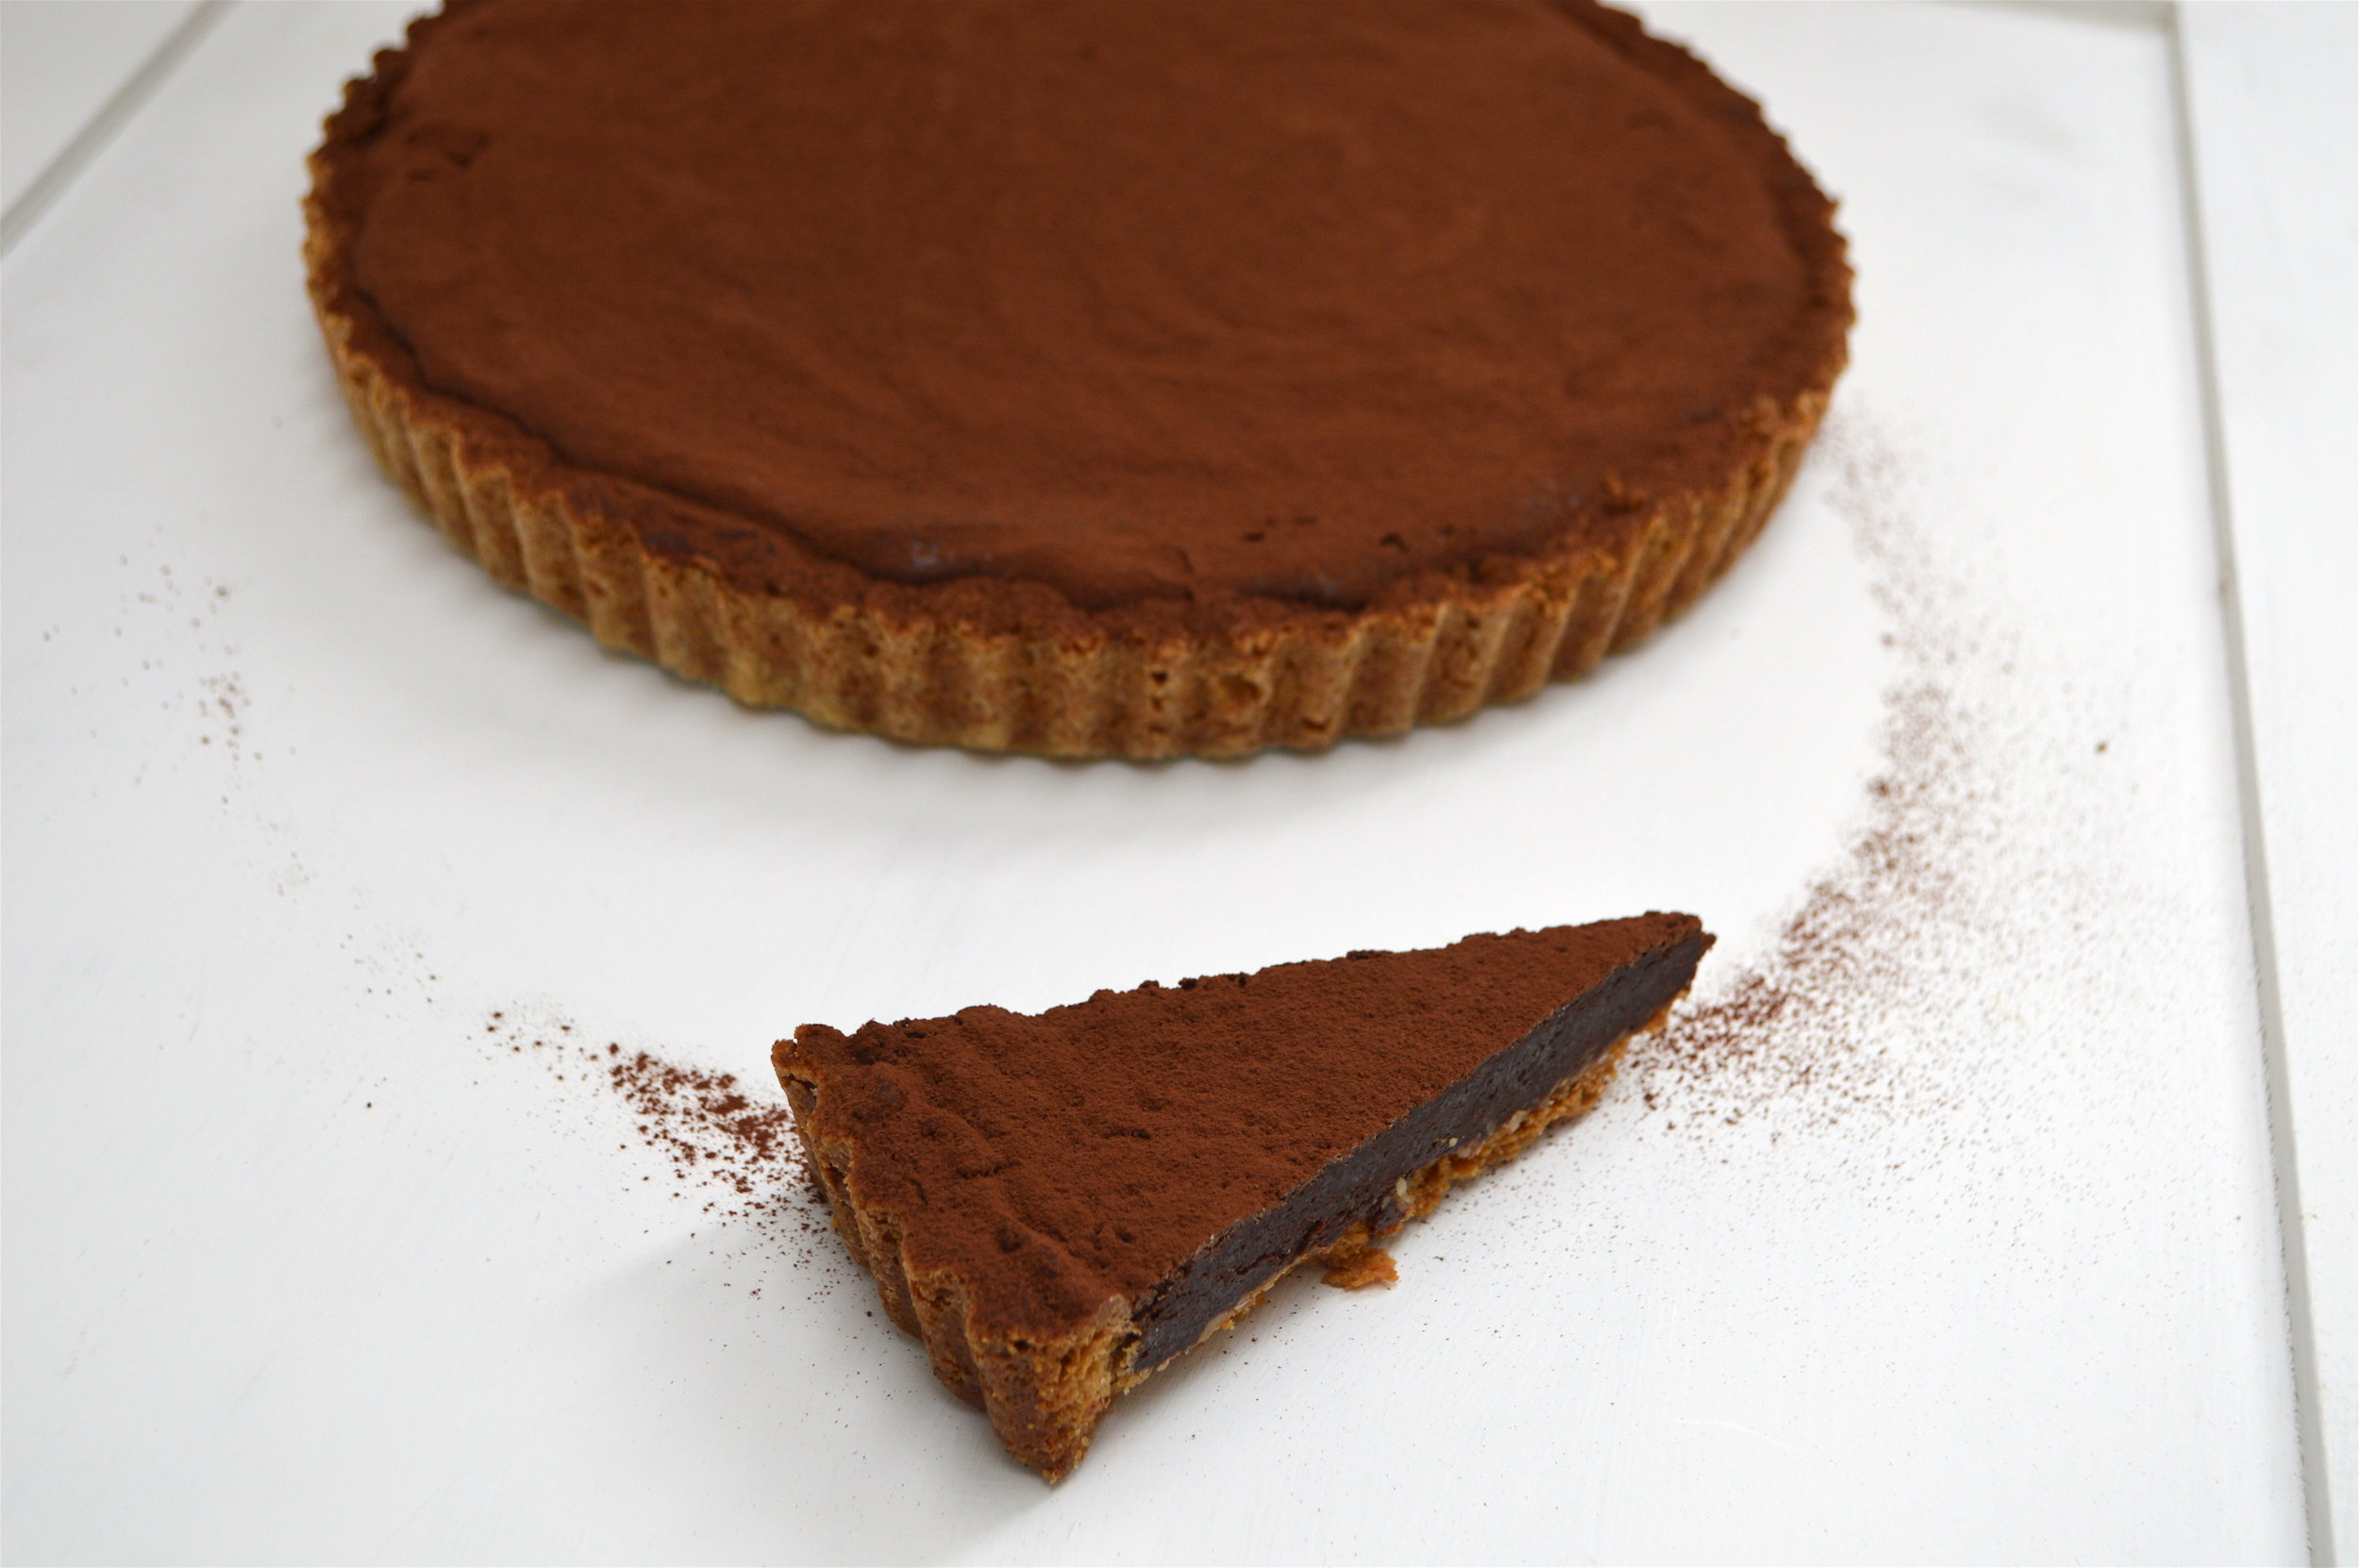 I made this for my sister's birthday popup dinner this week and is went down a storm. It has a wonderfully velvety smooth and rich filling with a flavourful, light pastry. It's actually quite simple to make as tarts go because there are only two stages but you must make sure you use a good quality chocolate. The main ingredient is choccy, so trust me, it has to be a good one. I recommend Lindt 70% coco for a good main stream one.  Serves 12  Ingredients:  For the pastry  230g spelt flour  100g almond flour/ground almonds  180g unsalted cold butter, diced  110g unrefined caster sugar  2 tsp vanilla extract  1 medium egg yolk  Pinch of sea salt  For the filling  5 medium eggs (4 yolks and 1 whole egg - lightly beaten)  300g dark chocolate, broken into pieces  135g unsalted soft butter  3 tsp vanilla extract or seeds from 1 vanilla pod  1 tsp instant coffee  140g unrefined caster sugar  100ml maple syrup  Coco powder for dusting  Start by making the pastry and add the spelt, almond flour, salt and sugar to a blender and pulse blend to mix it. Then add in the diced butter and blend. The mix should start to come together and after a couple of minutes add in the vanilla and egg yolk. Continue blending until the pastry comes together into a ball and wrap in cling film to rest in the fridge for at least one hour or overnight.  Preheat the oven to 170 degrees on the fan setting. Use a brush to evenly grease a loose bottom tart tray (23cm) and then dust gently with spelt flour so that it is lightly coated. Place into the fridge to keep cool. Get the chilled pastry and use a grater on the larger seating and start to grate the pastry. I like to do this instead over rolling so that you end up handling the pastry as little as possible. You want to try and keep it cool at all times. Get the pastry tin and begin fitting the dough into the mould. I would make it around 1-1.5cm think and this pastry is quite delicate so it doesn't matter if its a touch thicker that a normal wheat pas